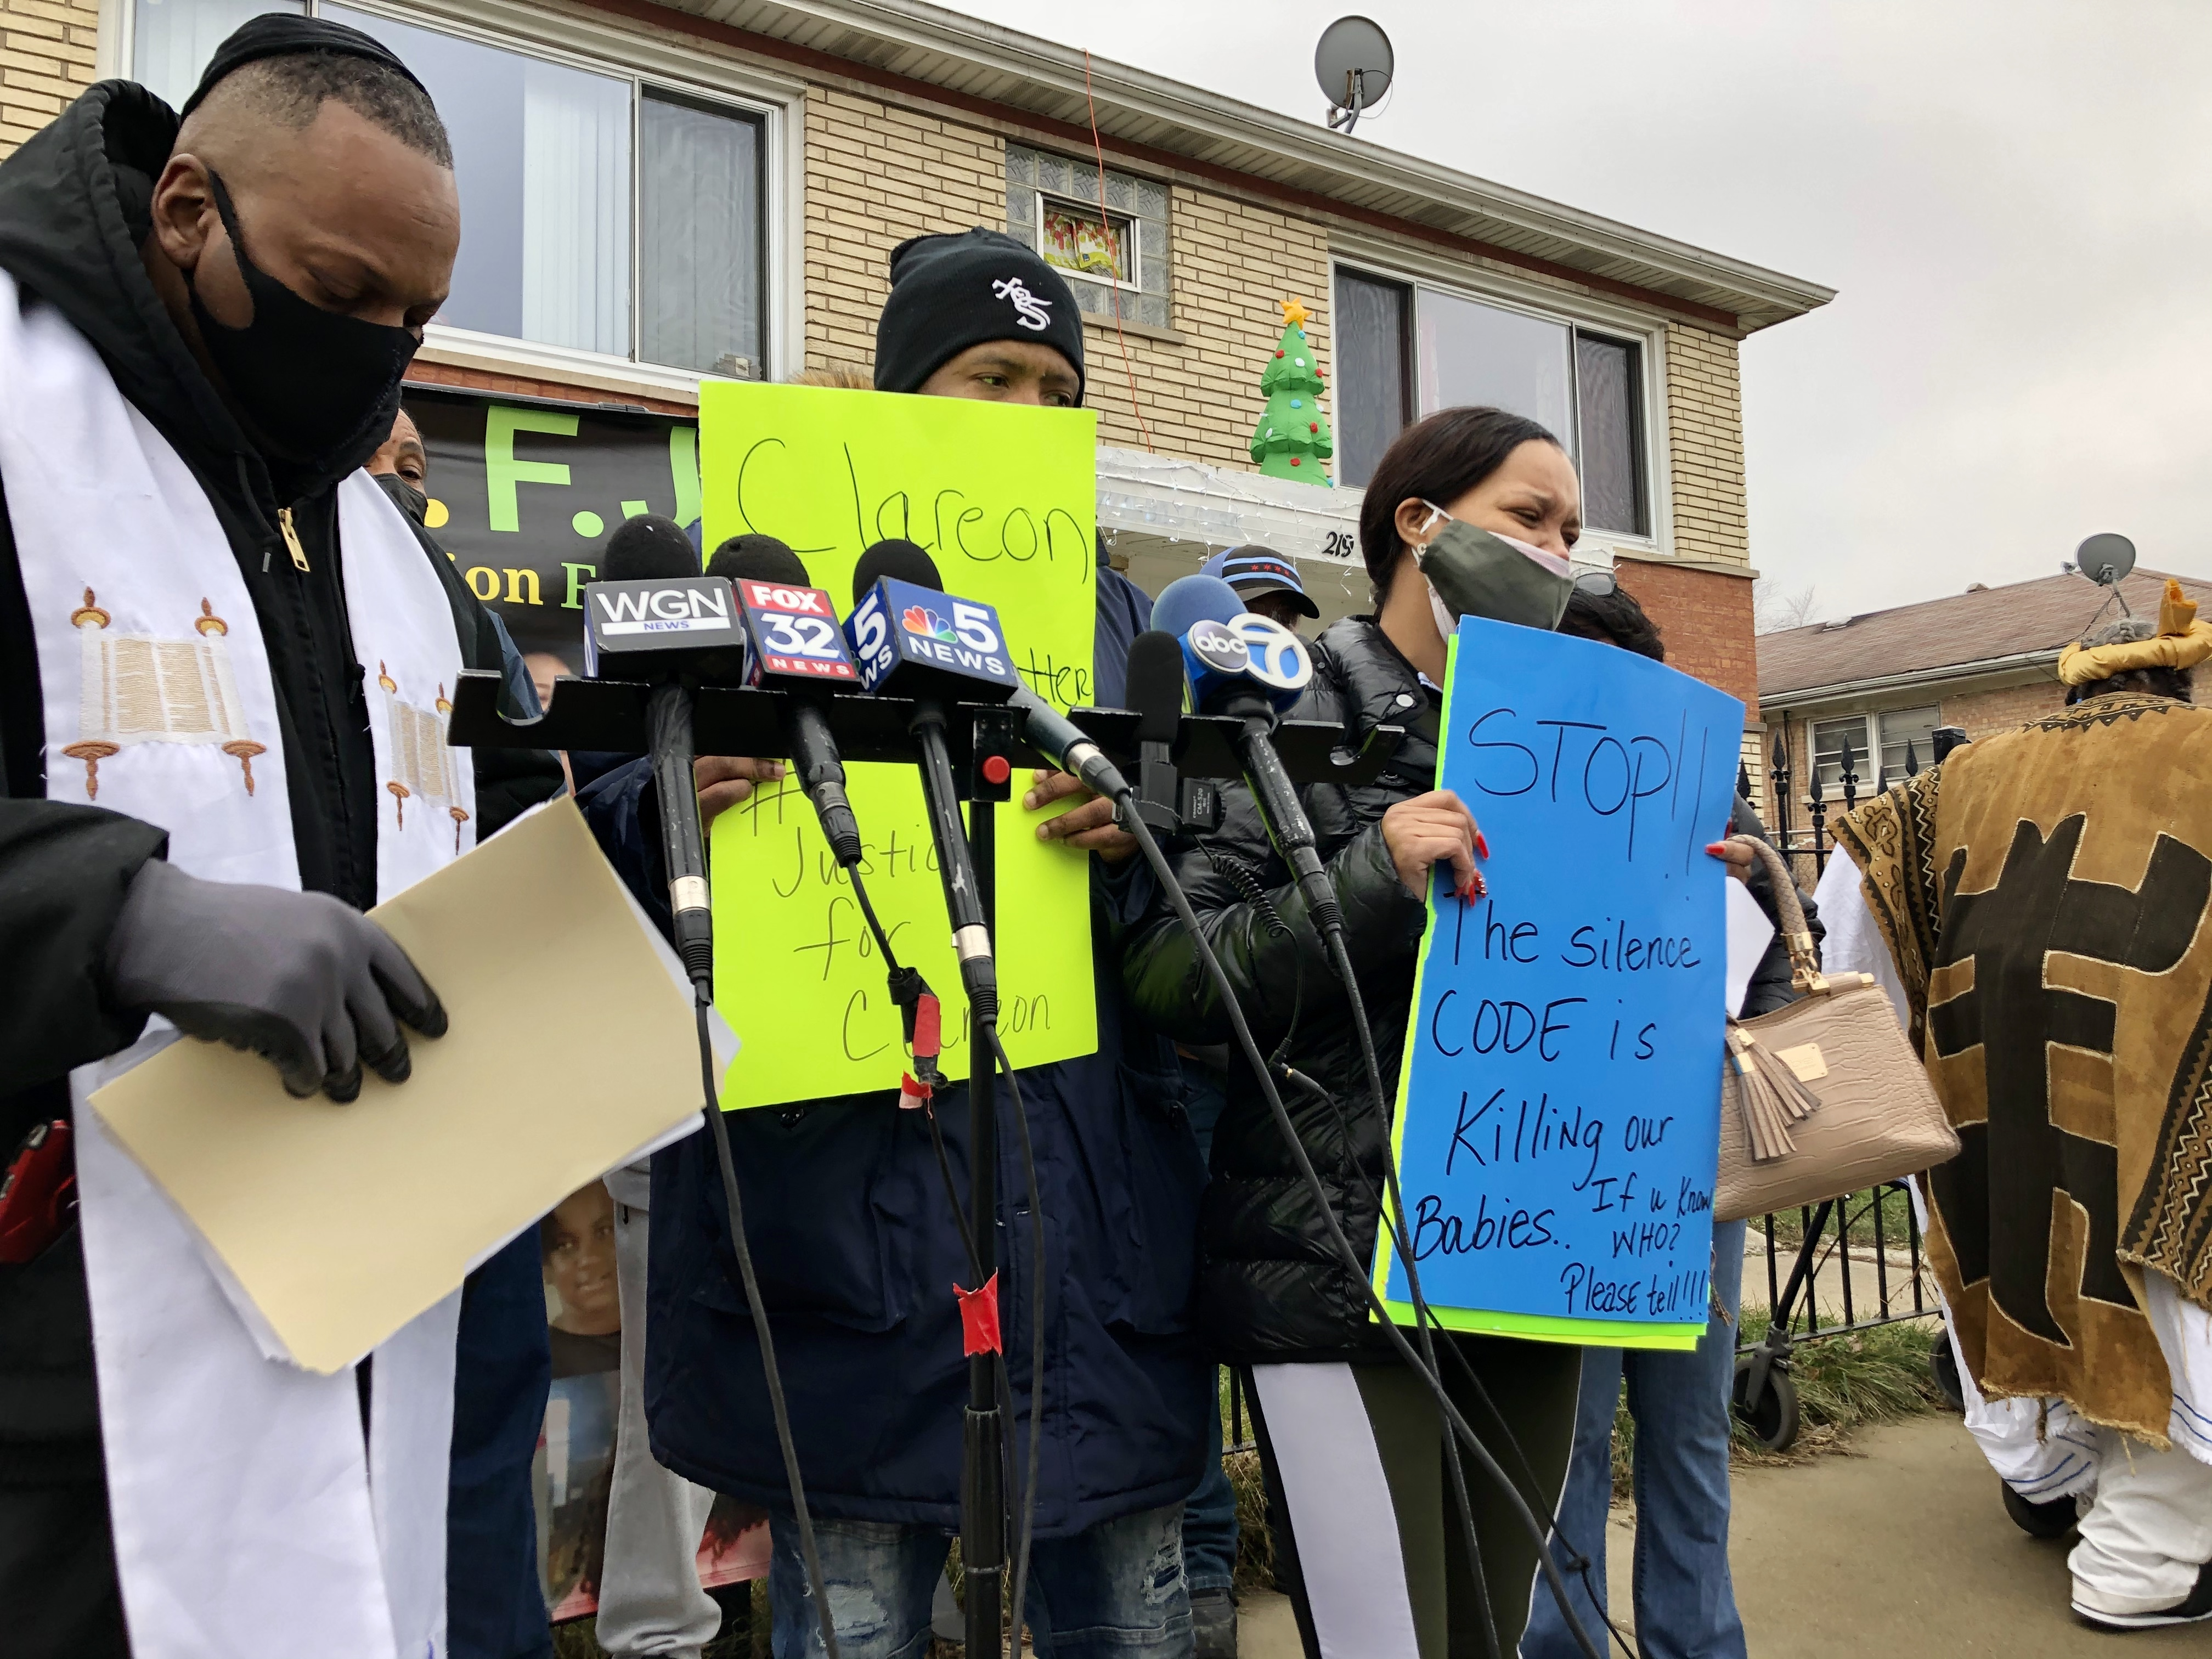 The parents of 5-year-old Clareon Williams speak to reporters in the 200 block of West 115th Street Friday, where the boy was shot in the head Nov. 16.